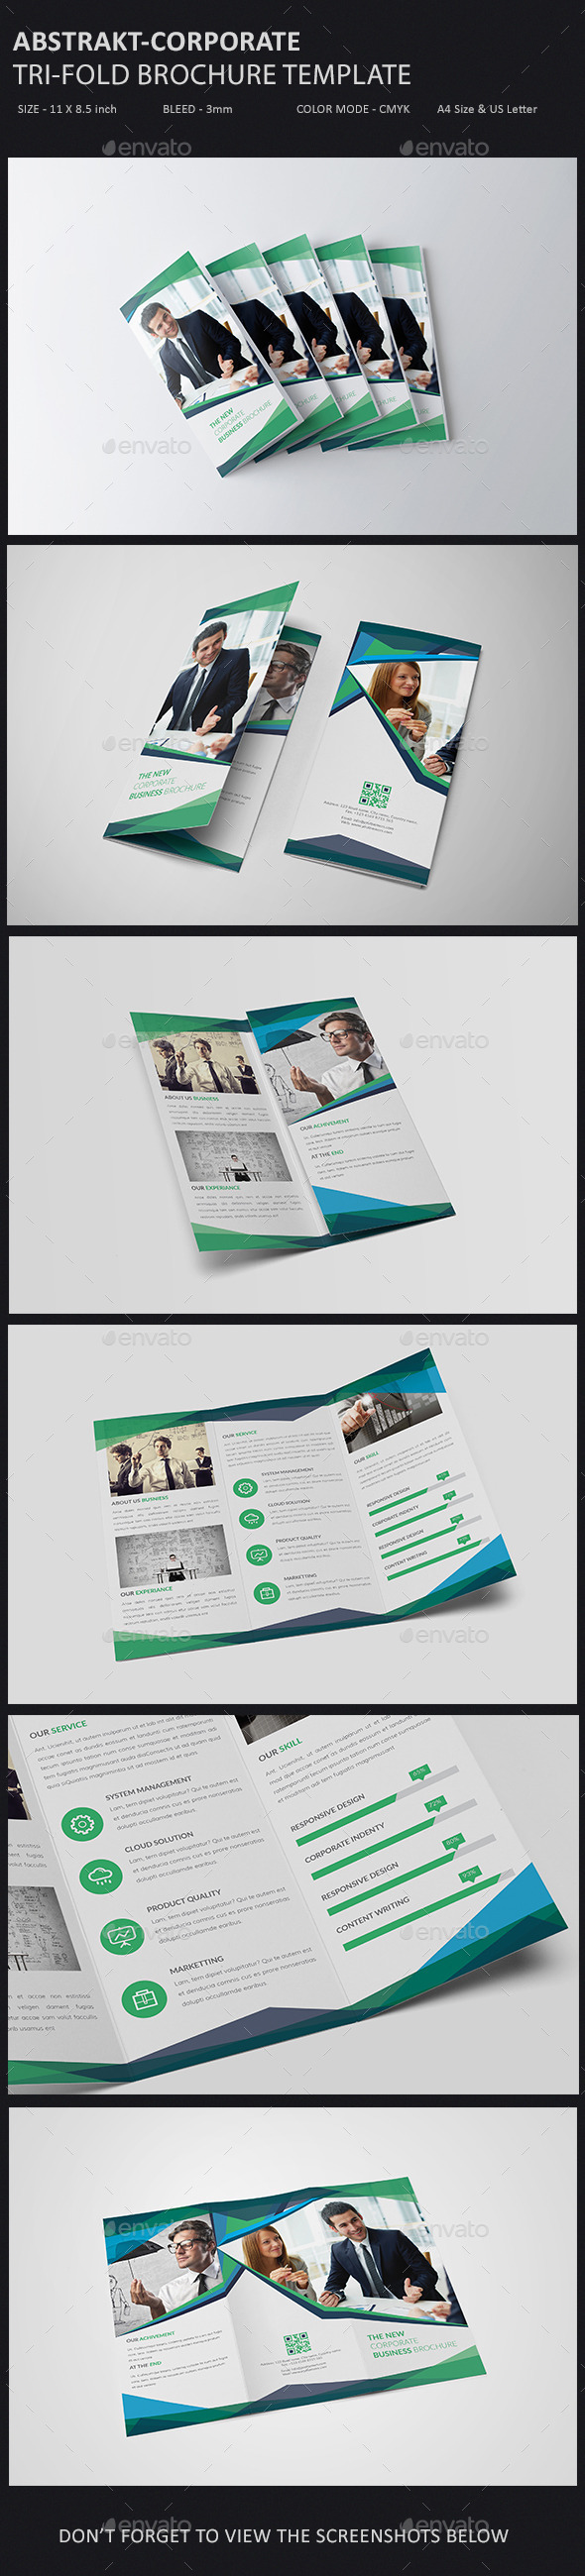 GraphicRiver Abstrakt- Corporate Trifold Brochure Template 11527339